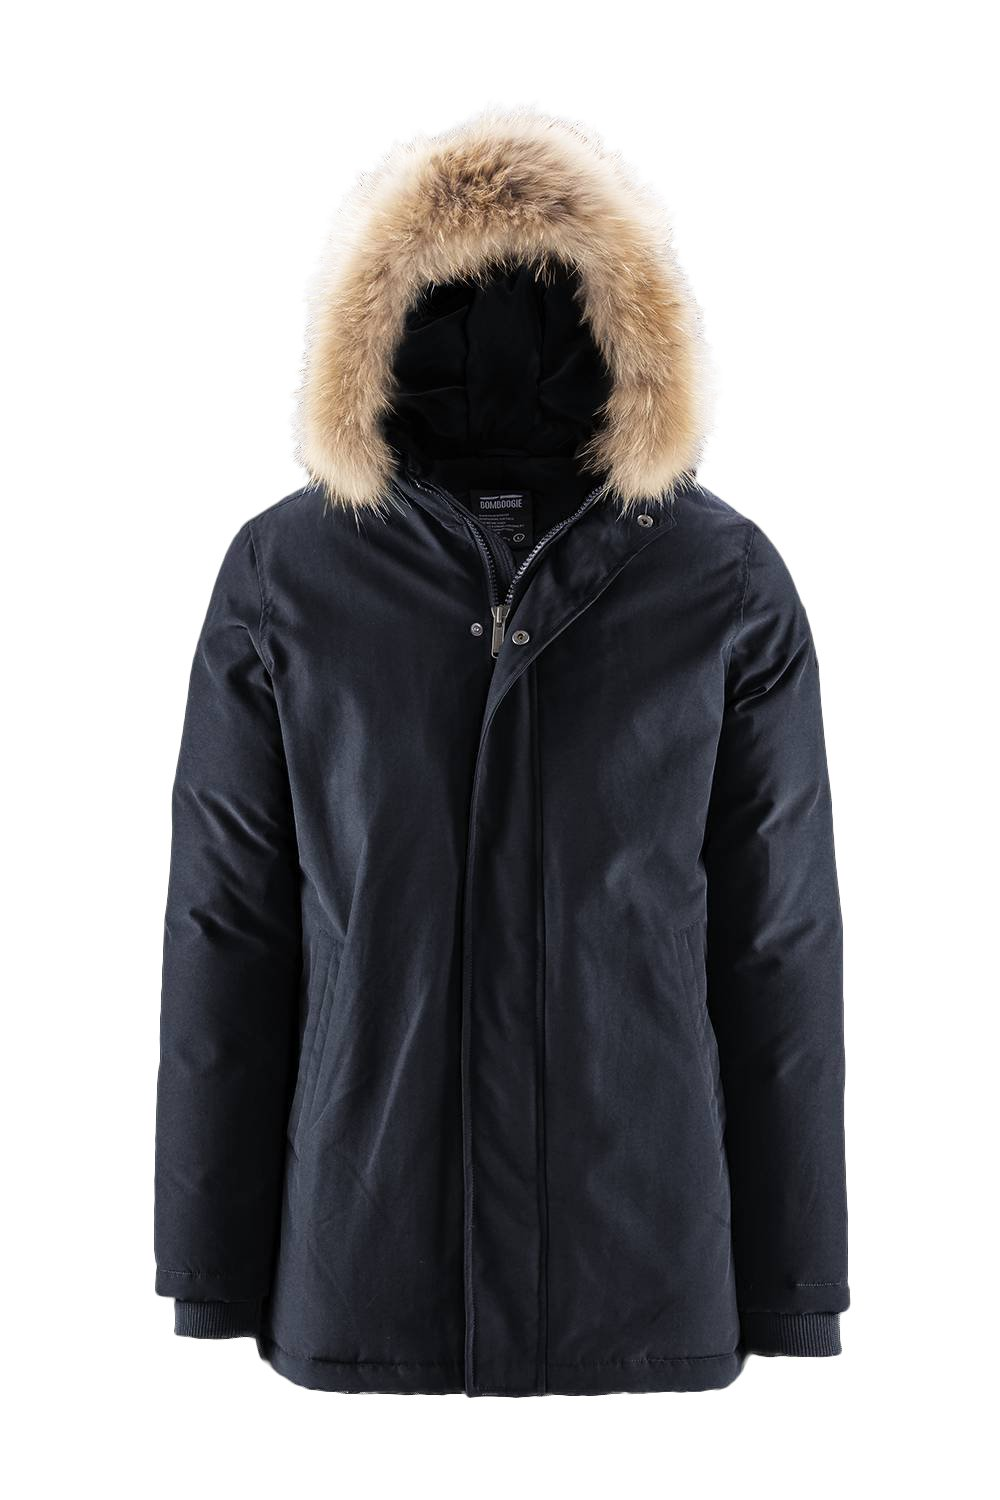 Bomboogie M's Parka Urban Taille XL   Hommes